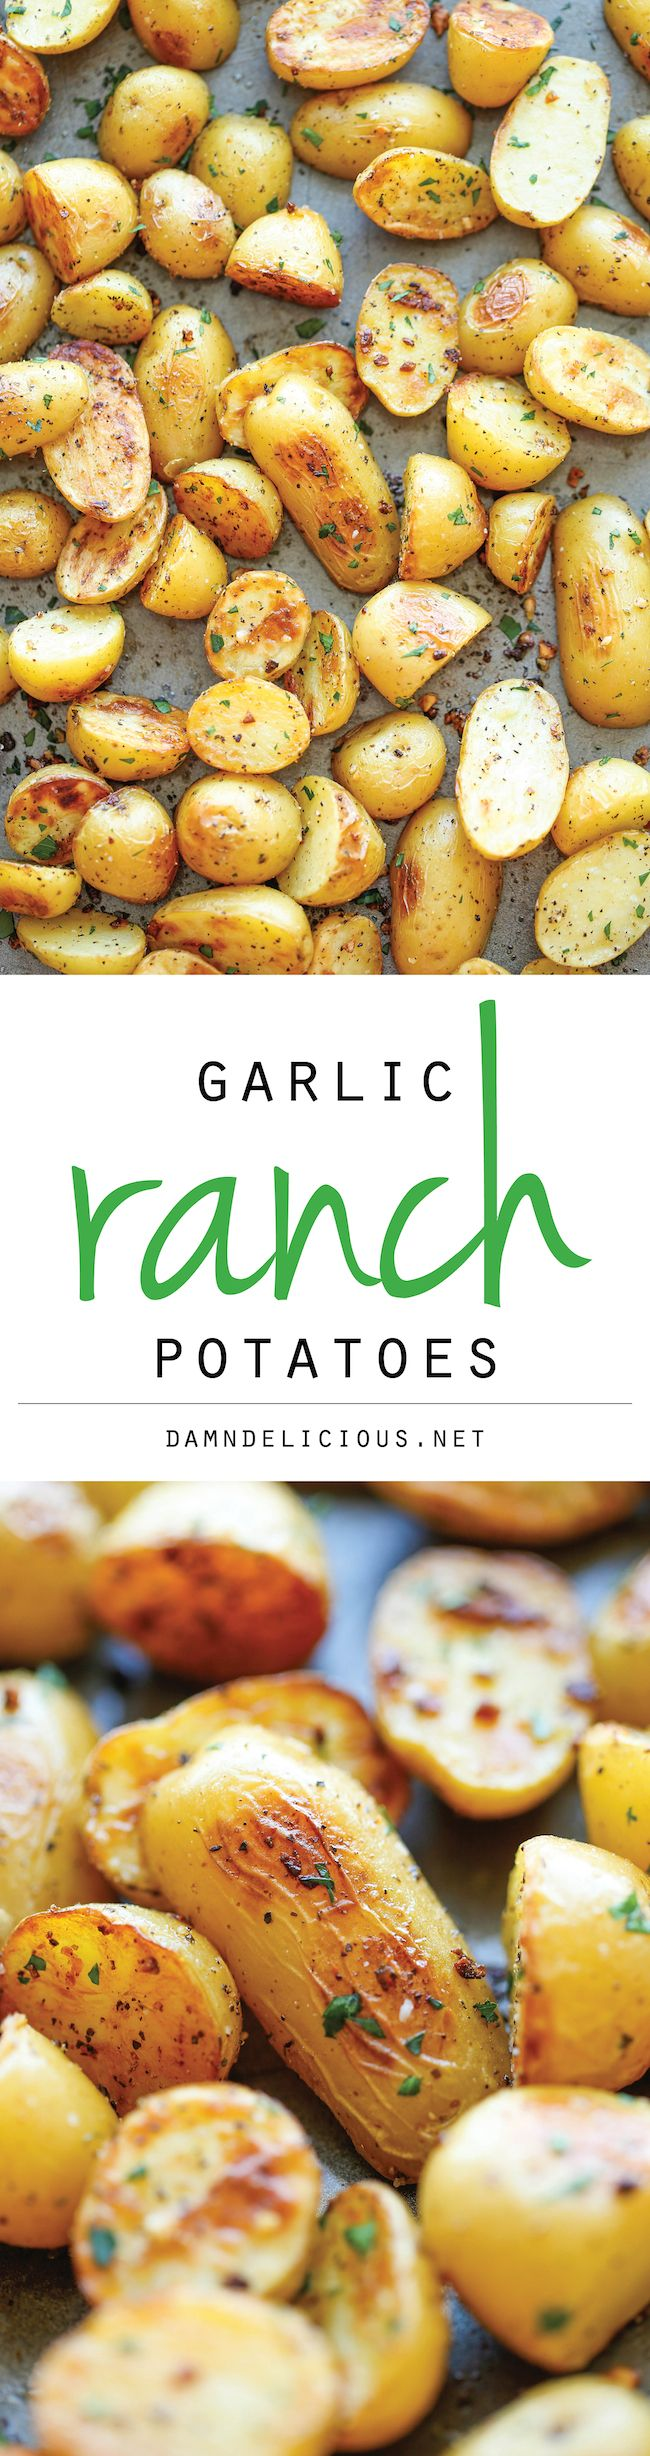 Garlic Ranch Potatoes - The best and easiest way to roast potatoes with garlic and ranch. After this, you'll never want to roast potatoes an...